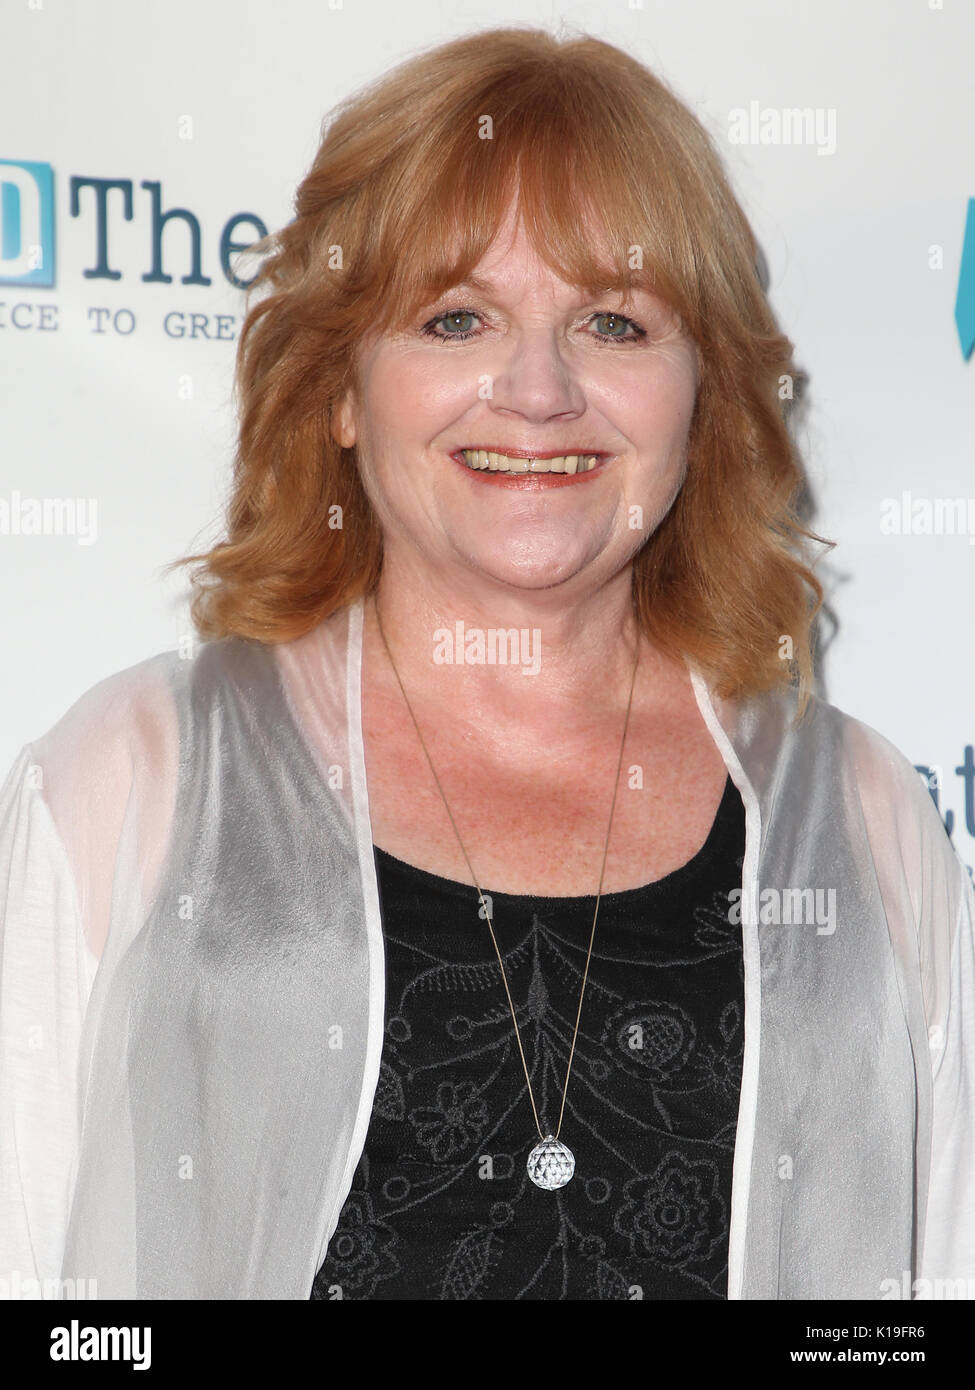 Hollywood, Ca. 26th Aug, 2017. Lesley Nicol, At WordTheatre Presents 'In The Cosmos' Where We Come From, Where We Are, And Where We Are Going' At John Anson Ford Amphitheatre In California on August 26, 2017. Credit: Fs/Media Punch/Alamy Live News - Stock Image